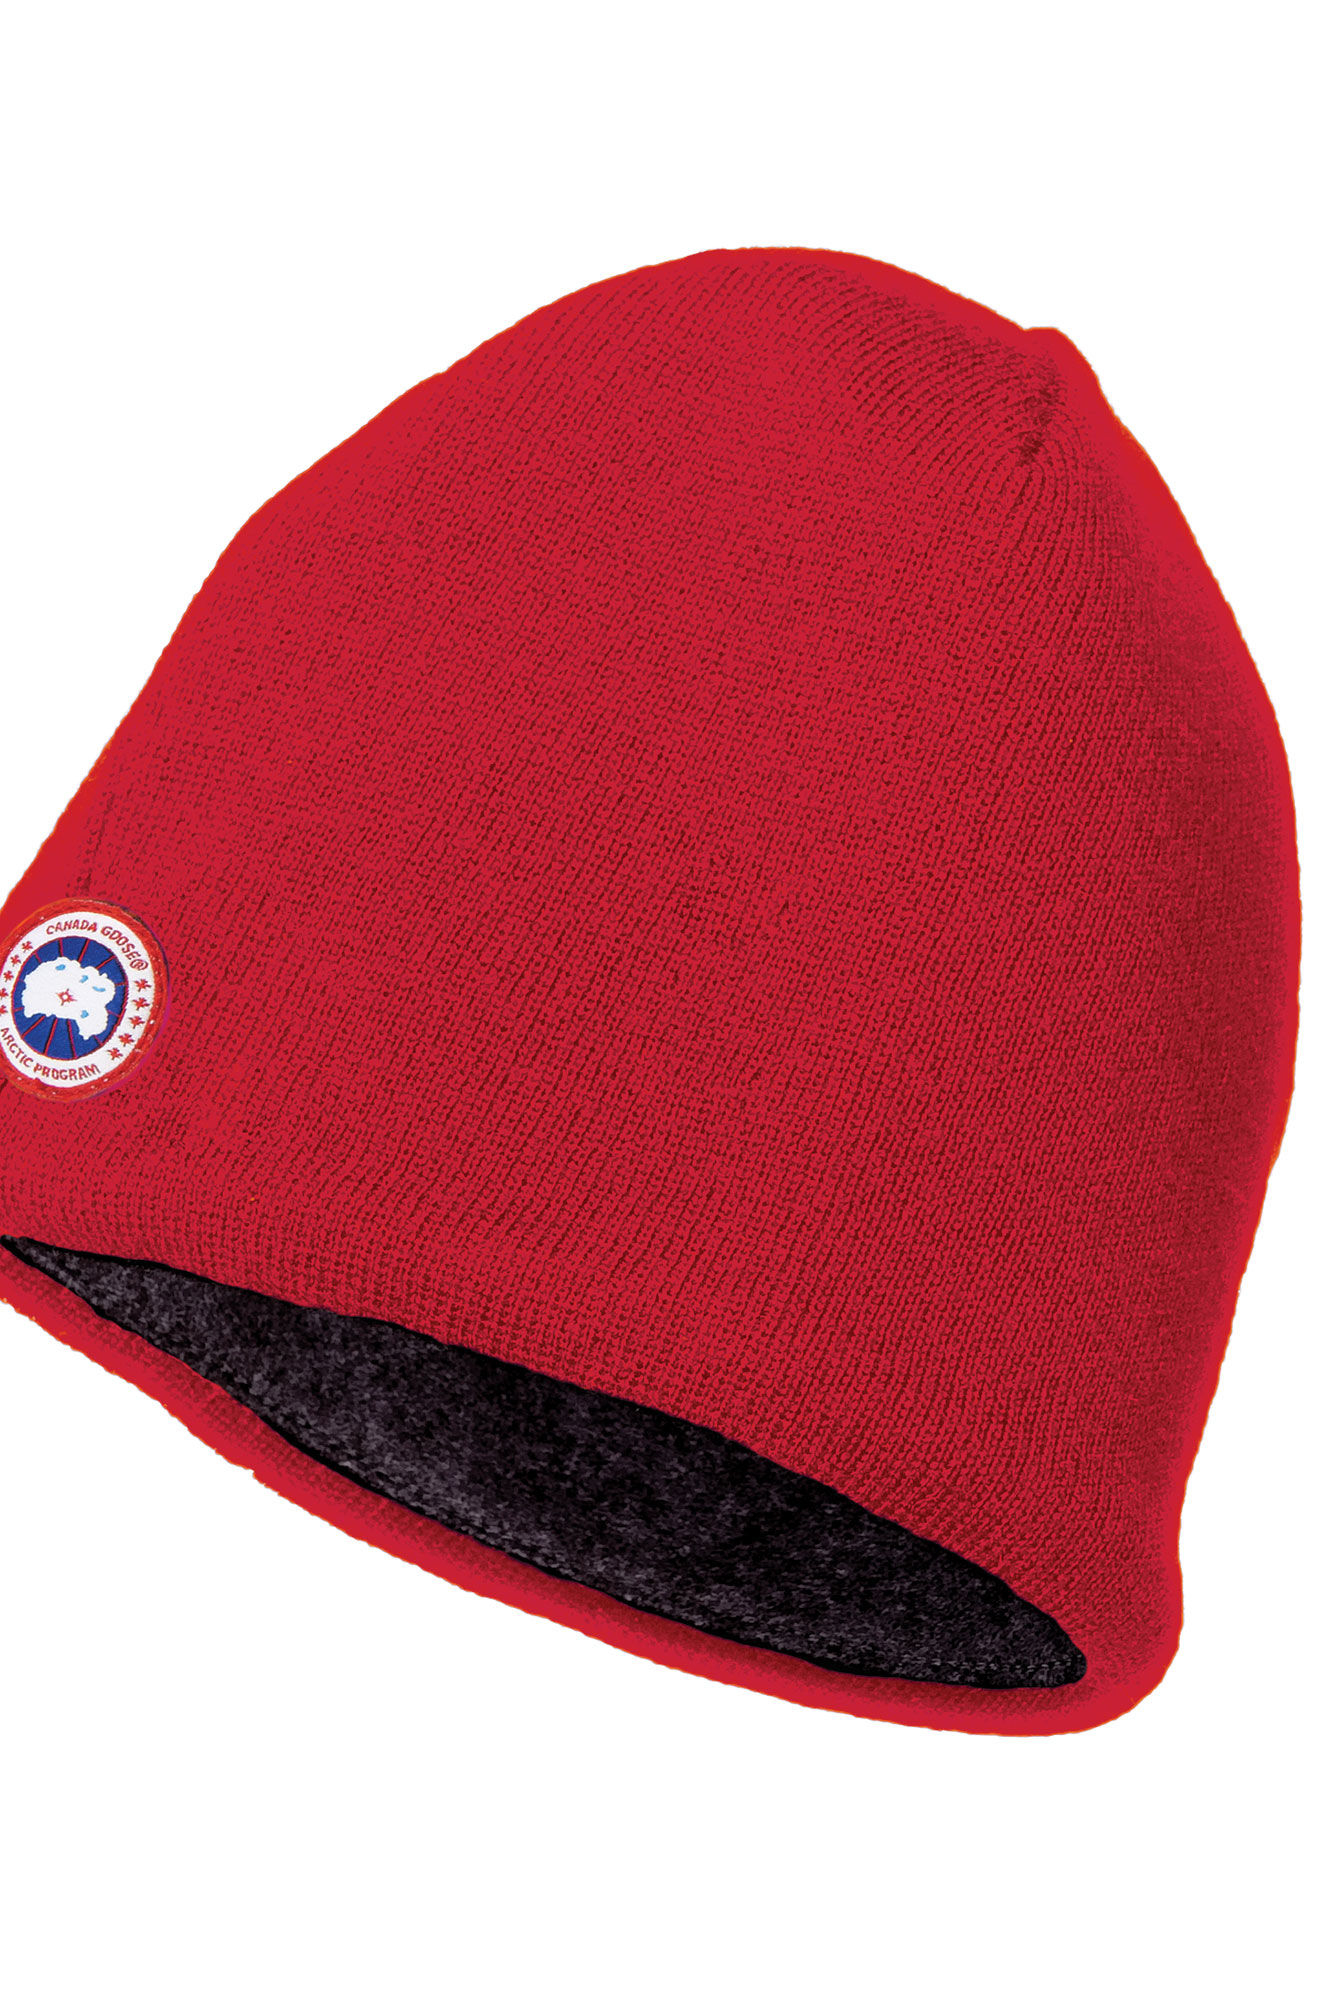 Canada Goose trillium parka sale cheap - Canada goose Merino Wool Beanie in Red for Men | Lyst